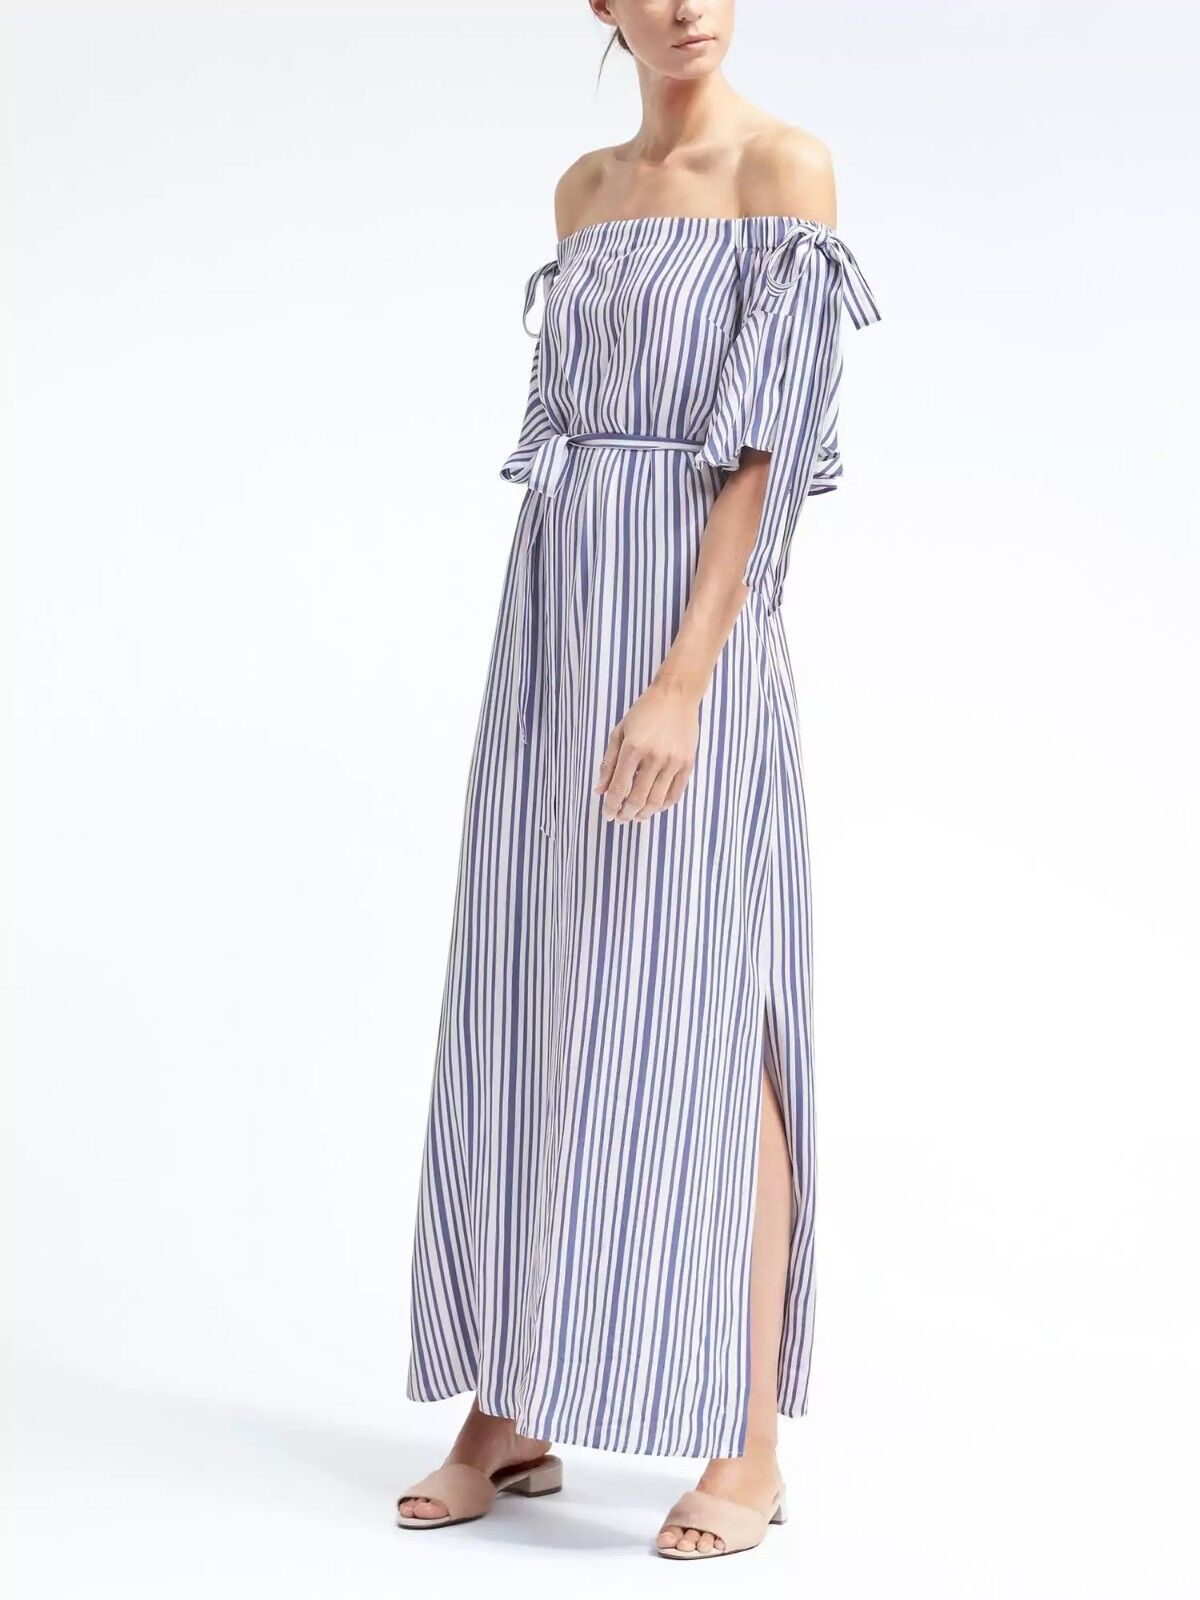 Banana Republic Off-the-Shoulder Maxi Dress,Blau Stripe Größe S      E211